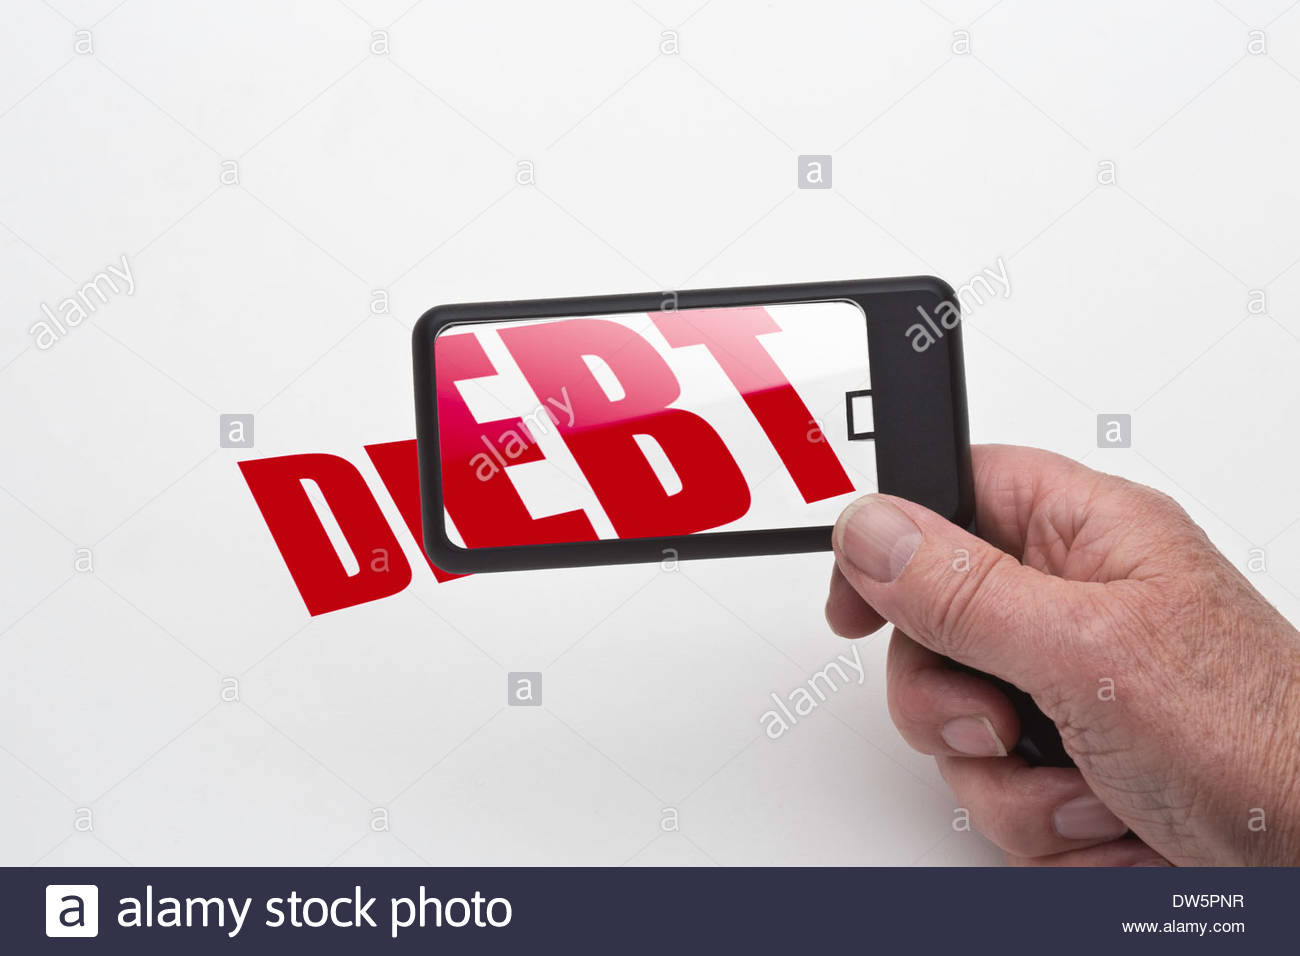 Mans hand holding a magnifying glass showing the word debt being magnified. - Stock Image